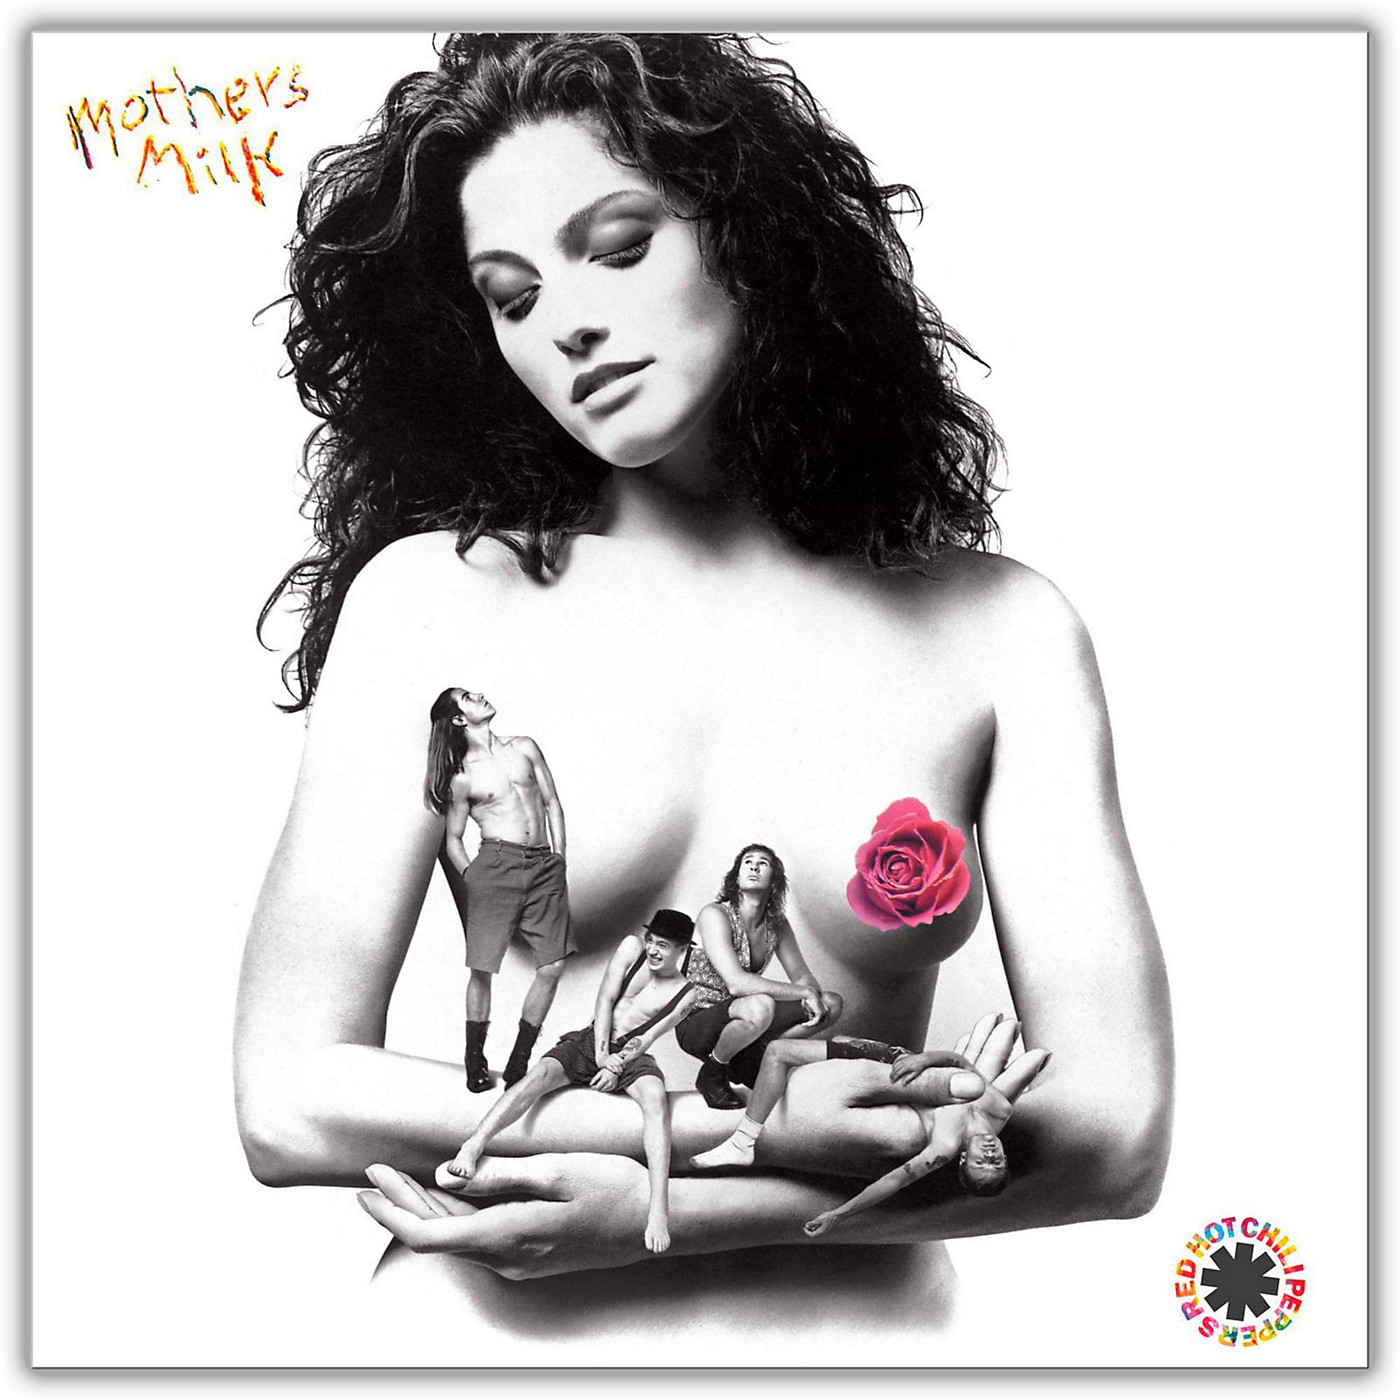 Universal Music Group Red Hot Chili Peppers - Mother's Milk Vinyl LP thumbnail